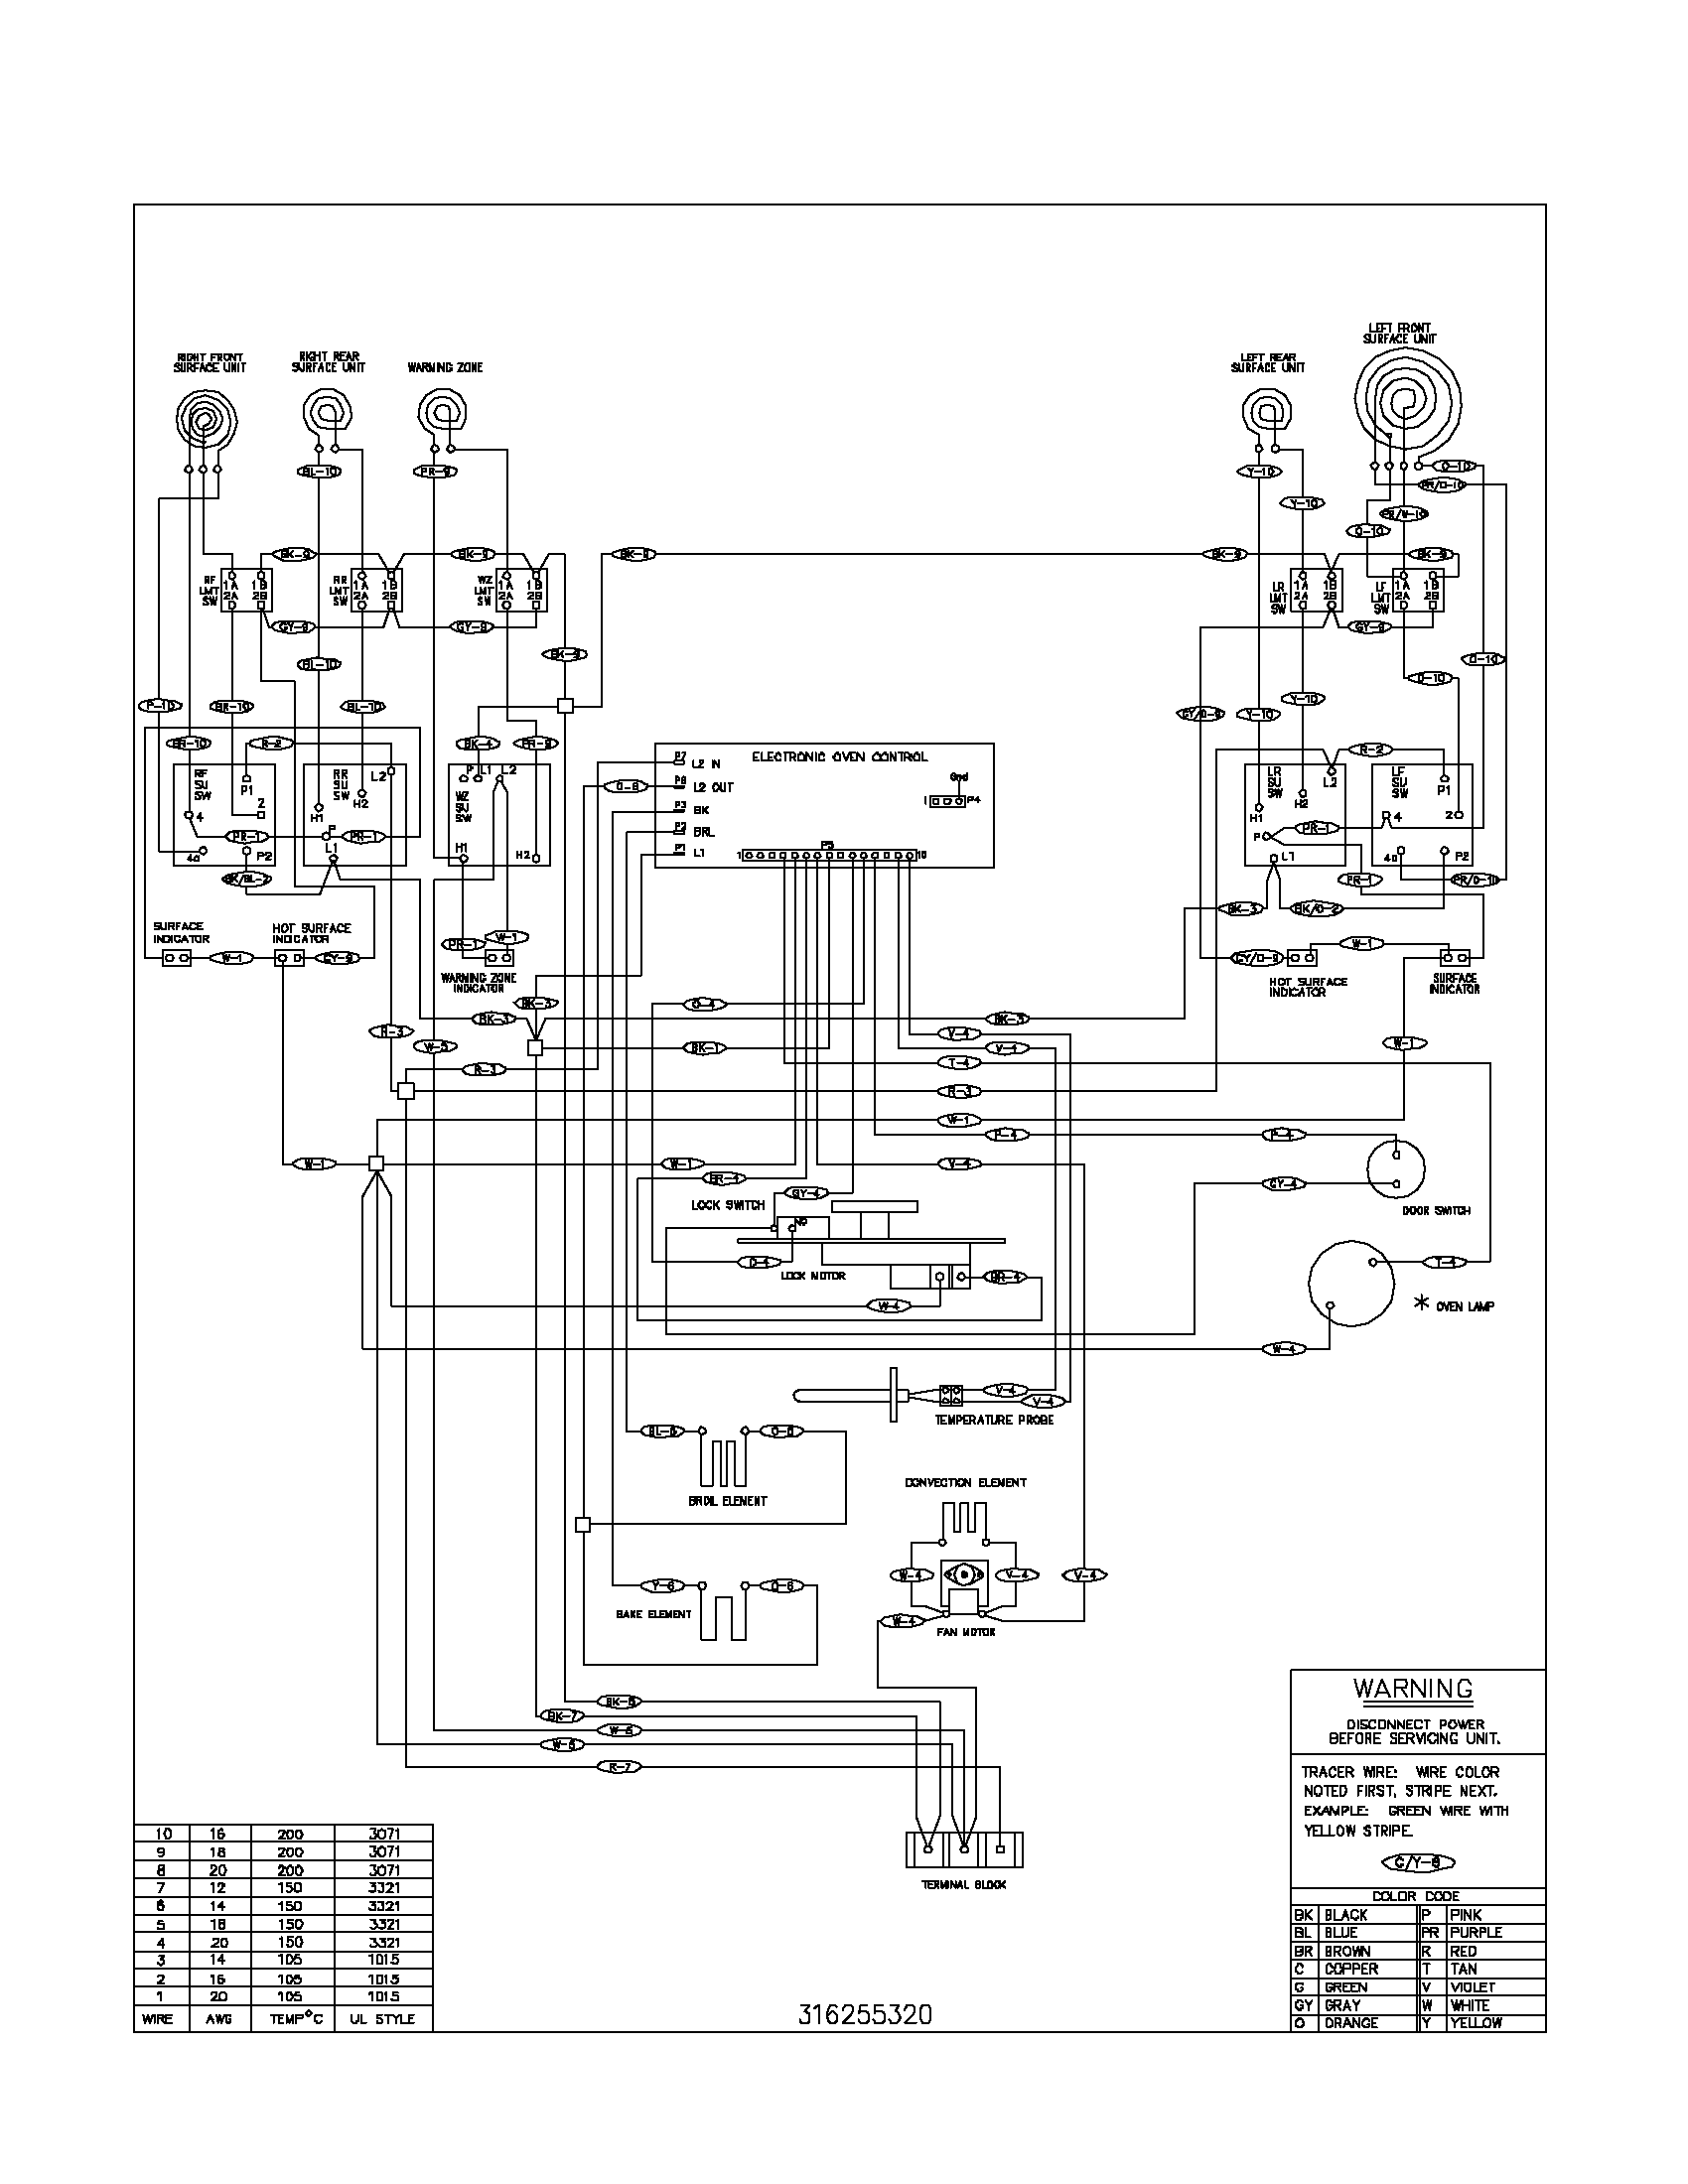 wiring diagram parts whirlpool fefl88acc electric range timer stove clocks and ge stove wiring diagram at honlapkeszites.co